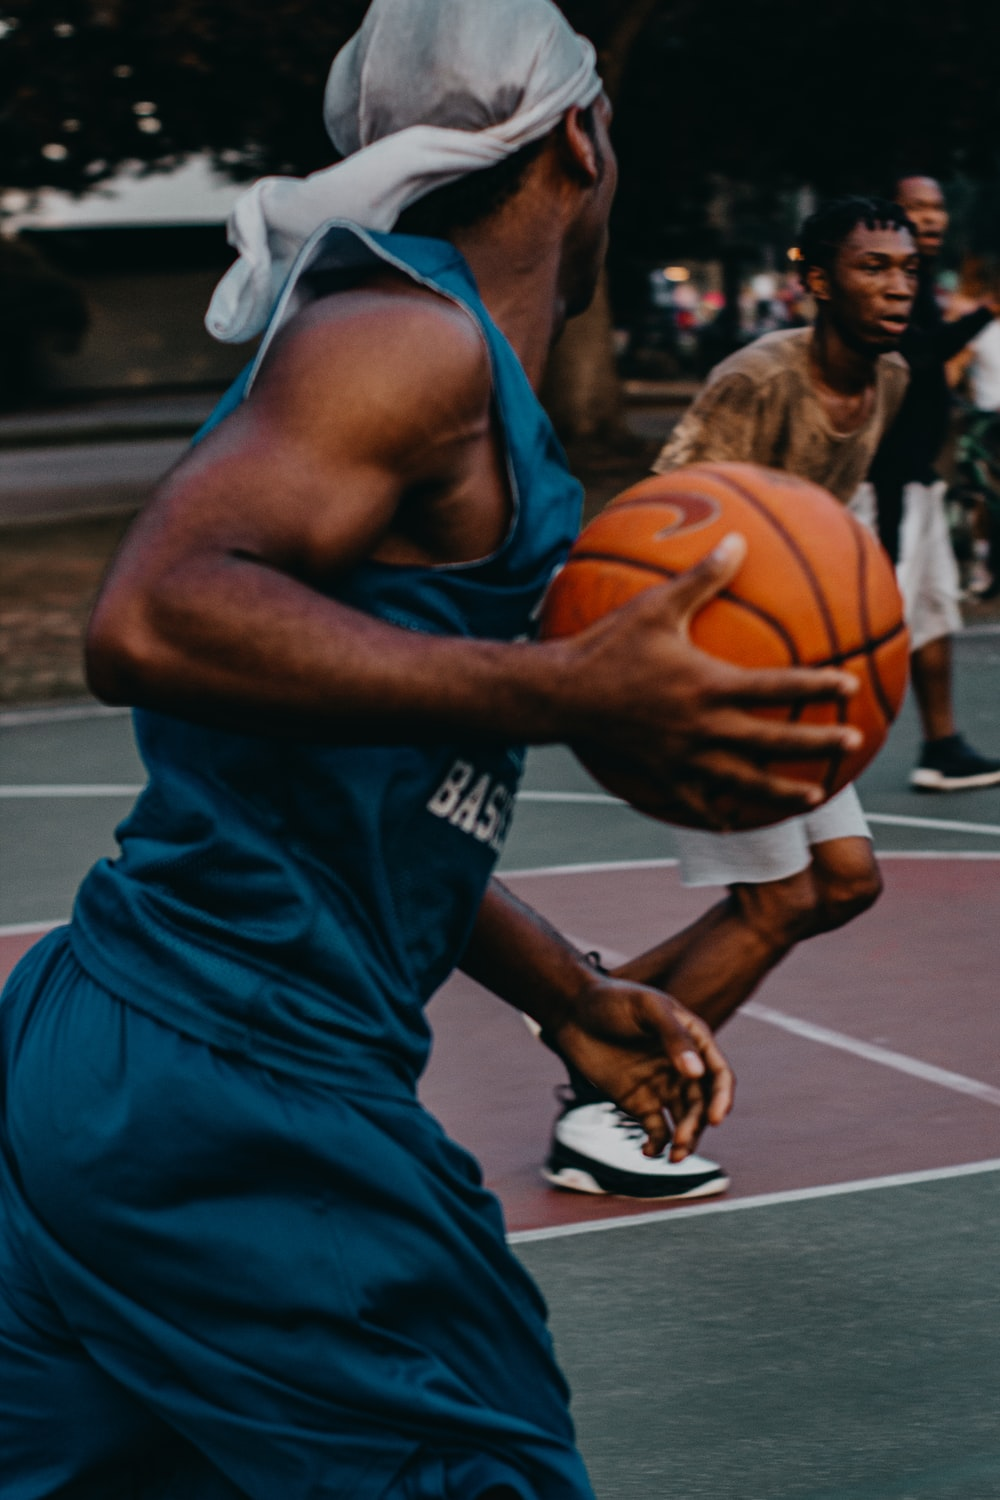 man in blue basketball uniform with ball in court